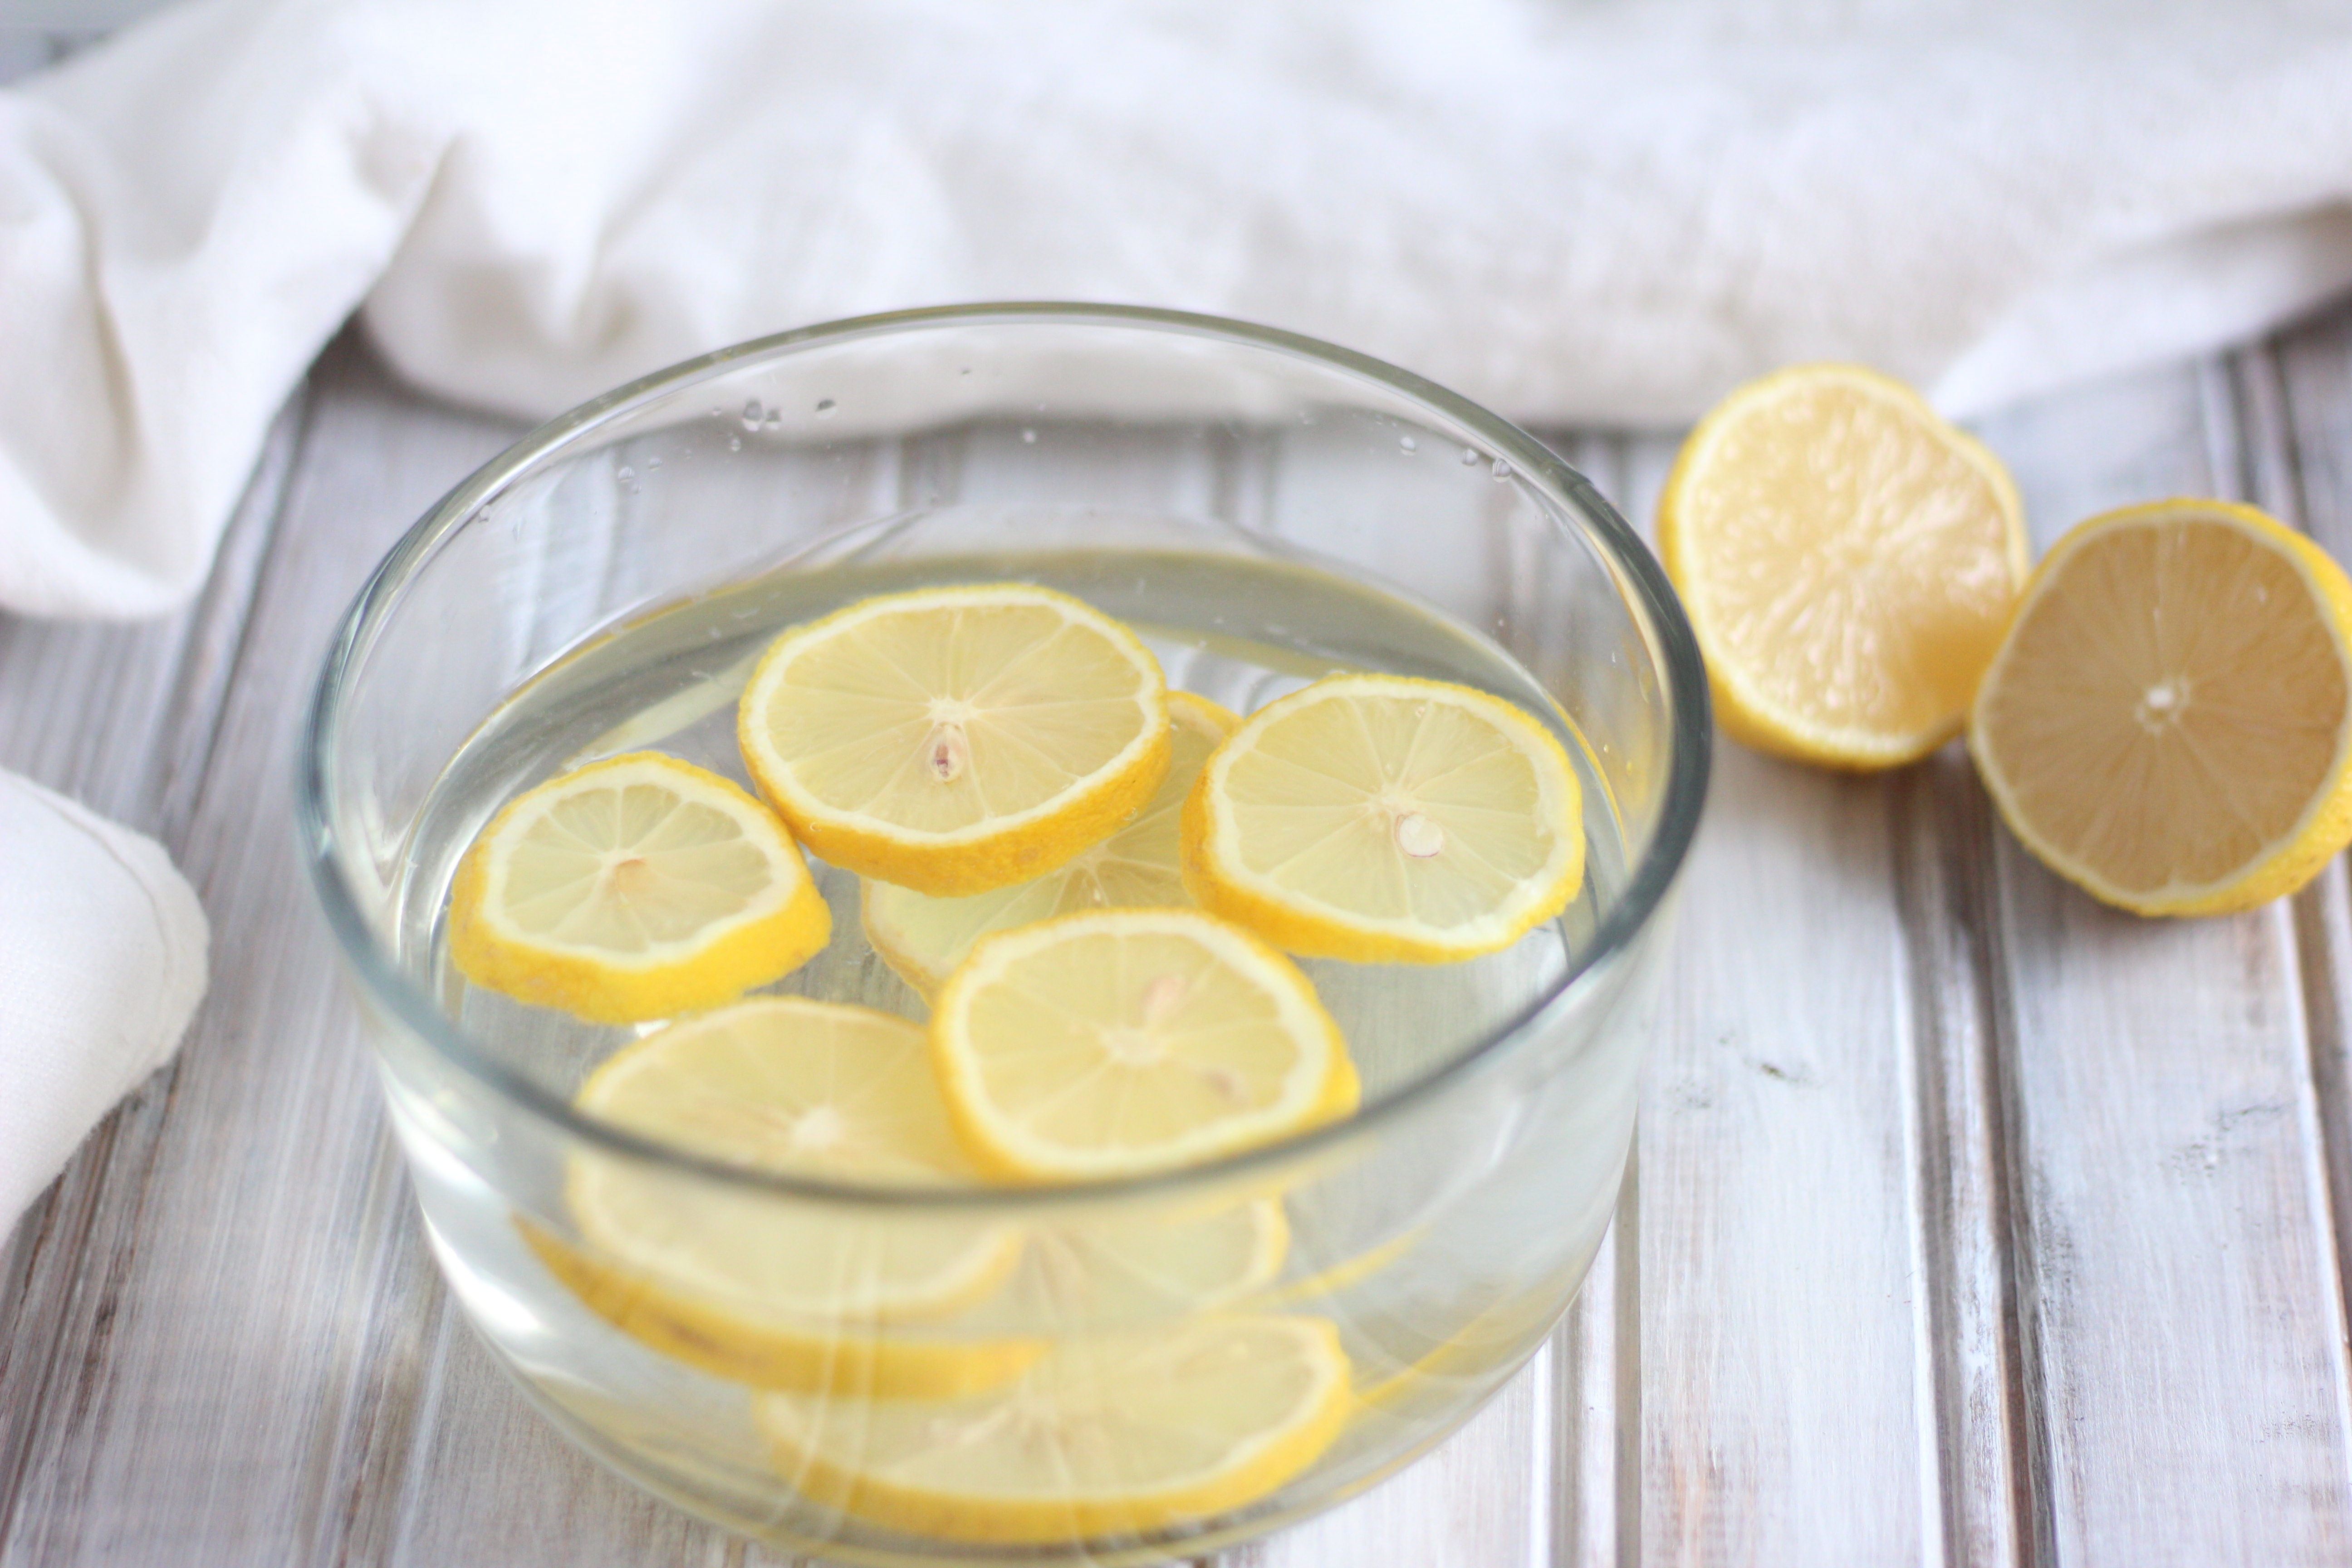 All natural lemon and water is a simple way to naturally clean your microwave with no chemicals